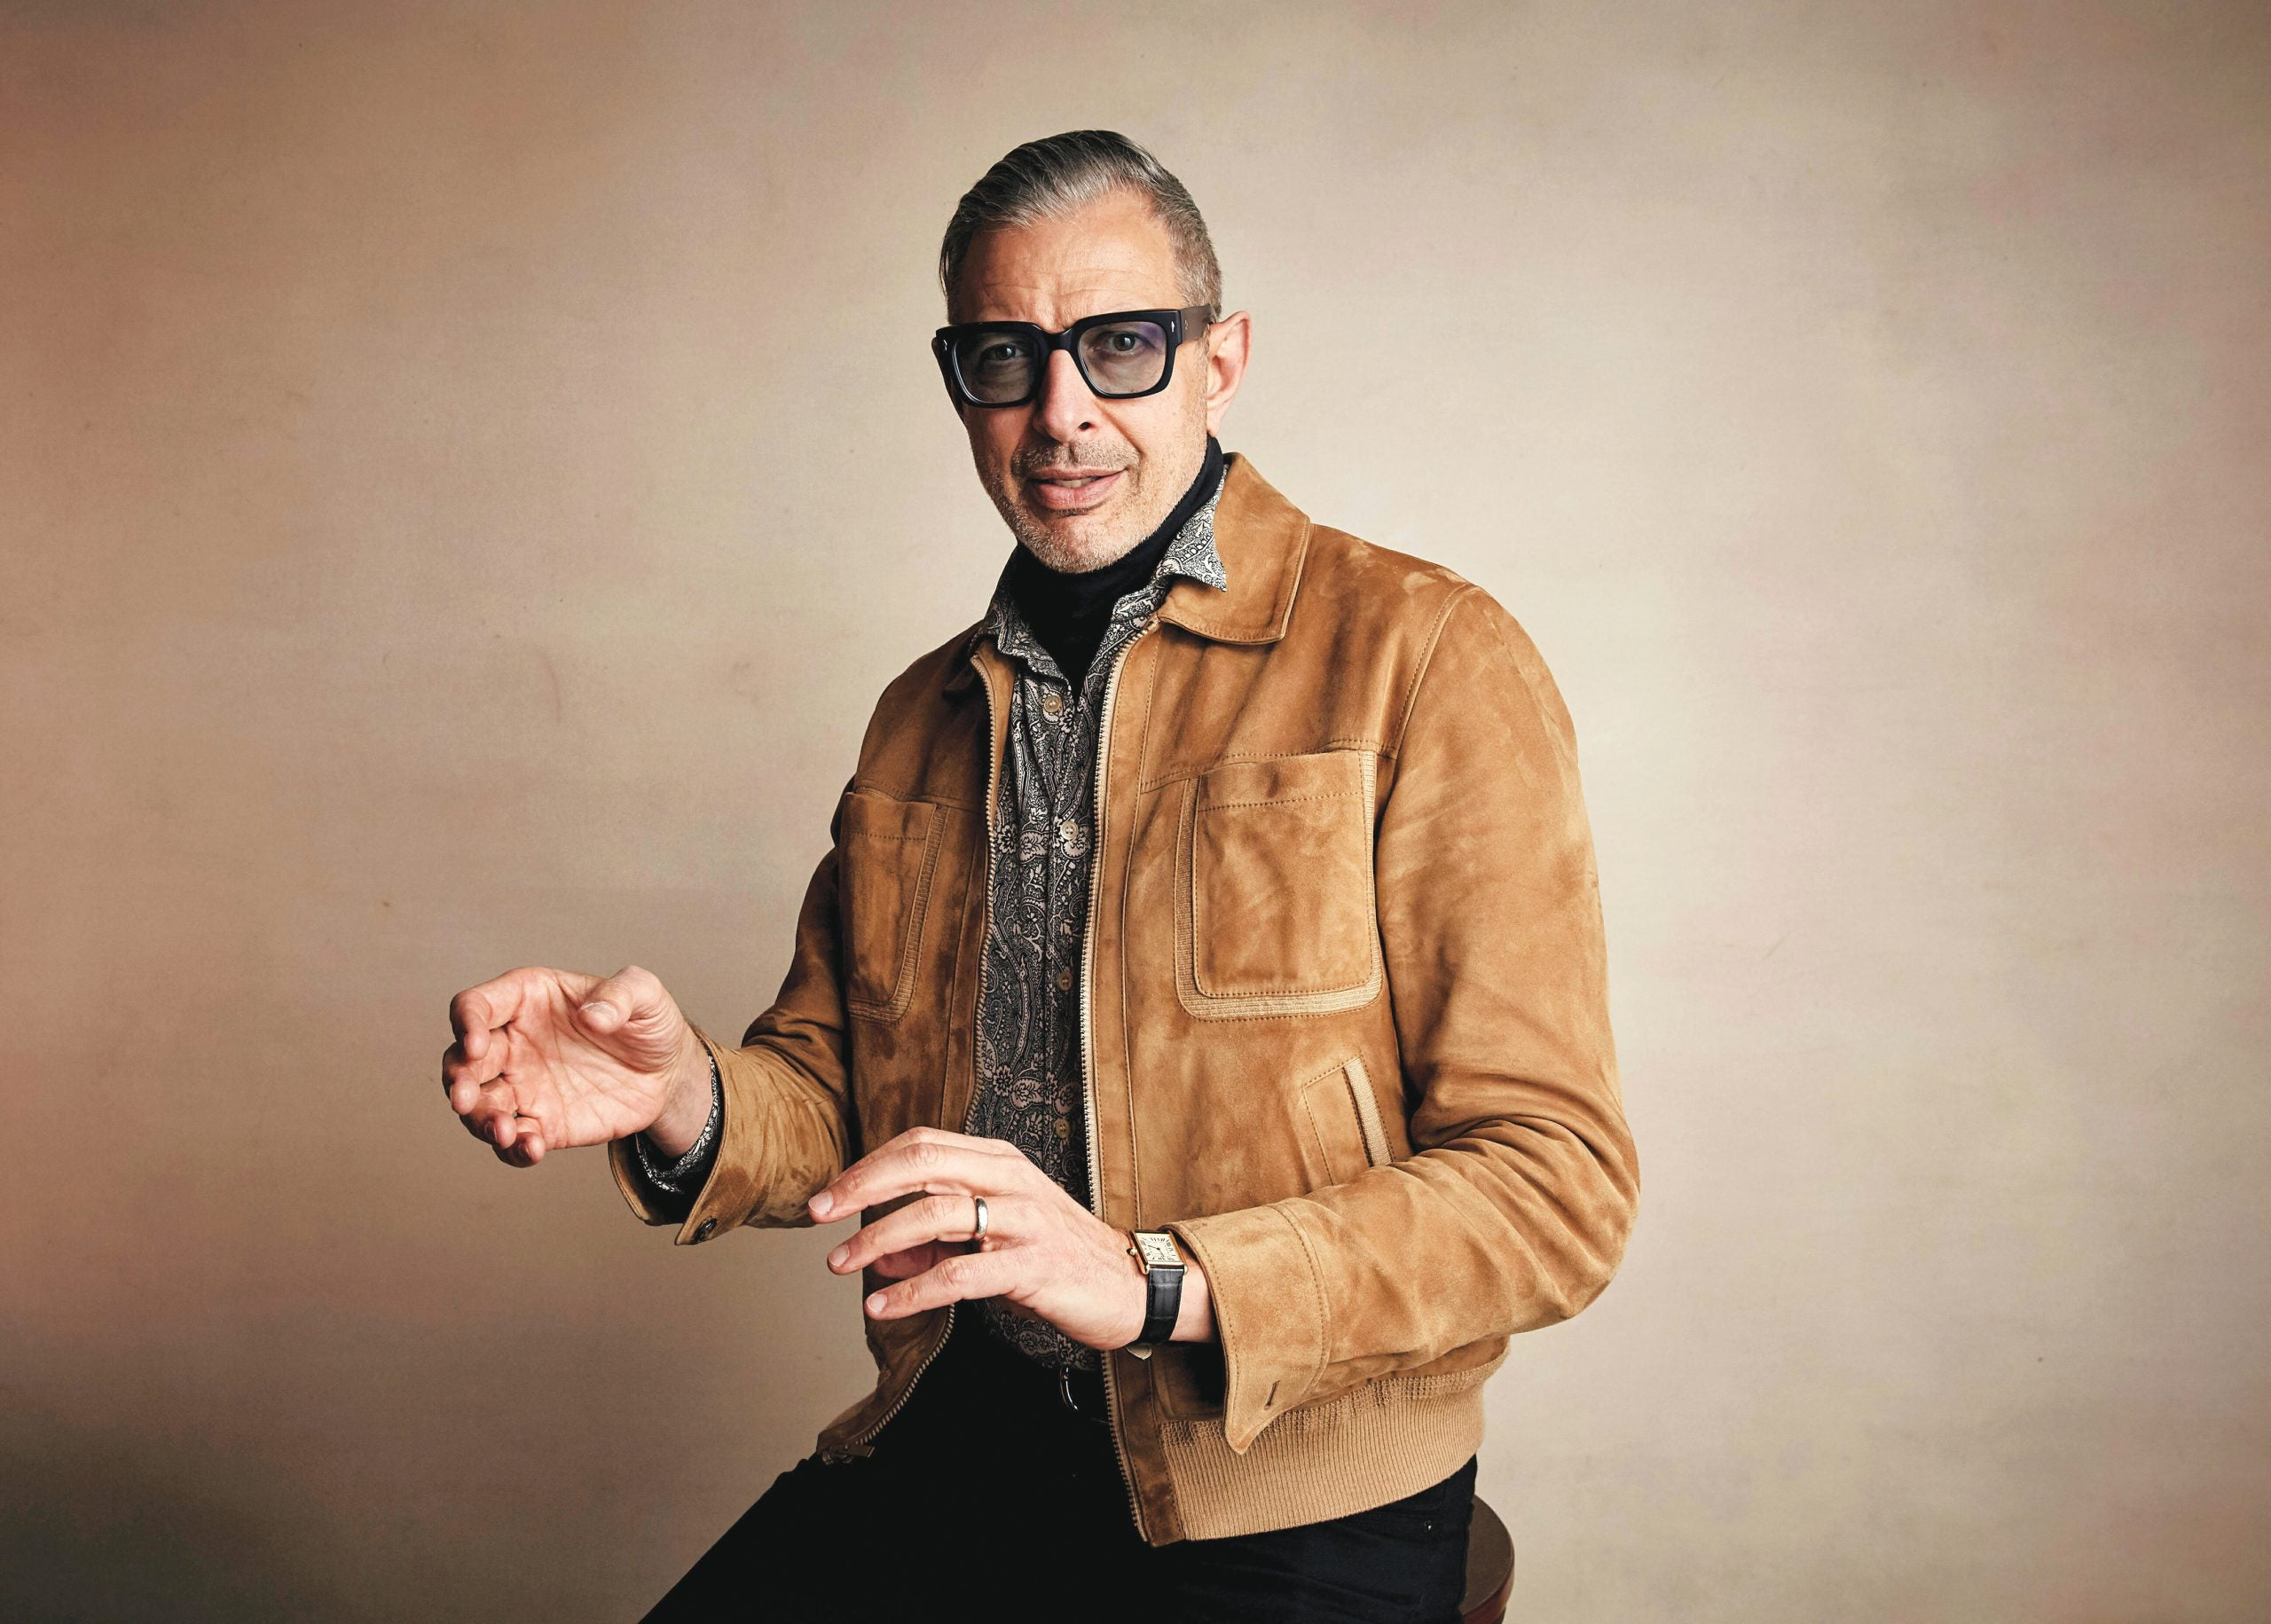 A day in the life of Jeff Goldblum